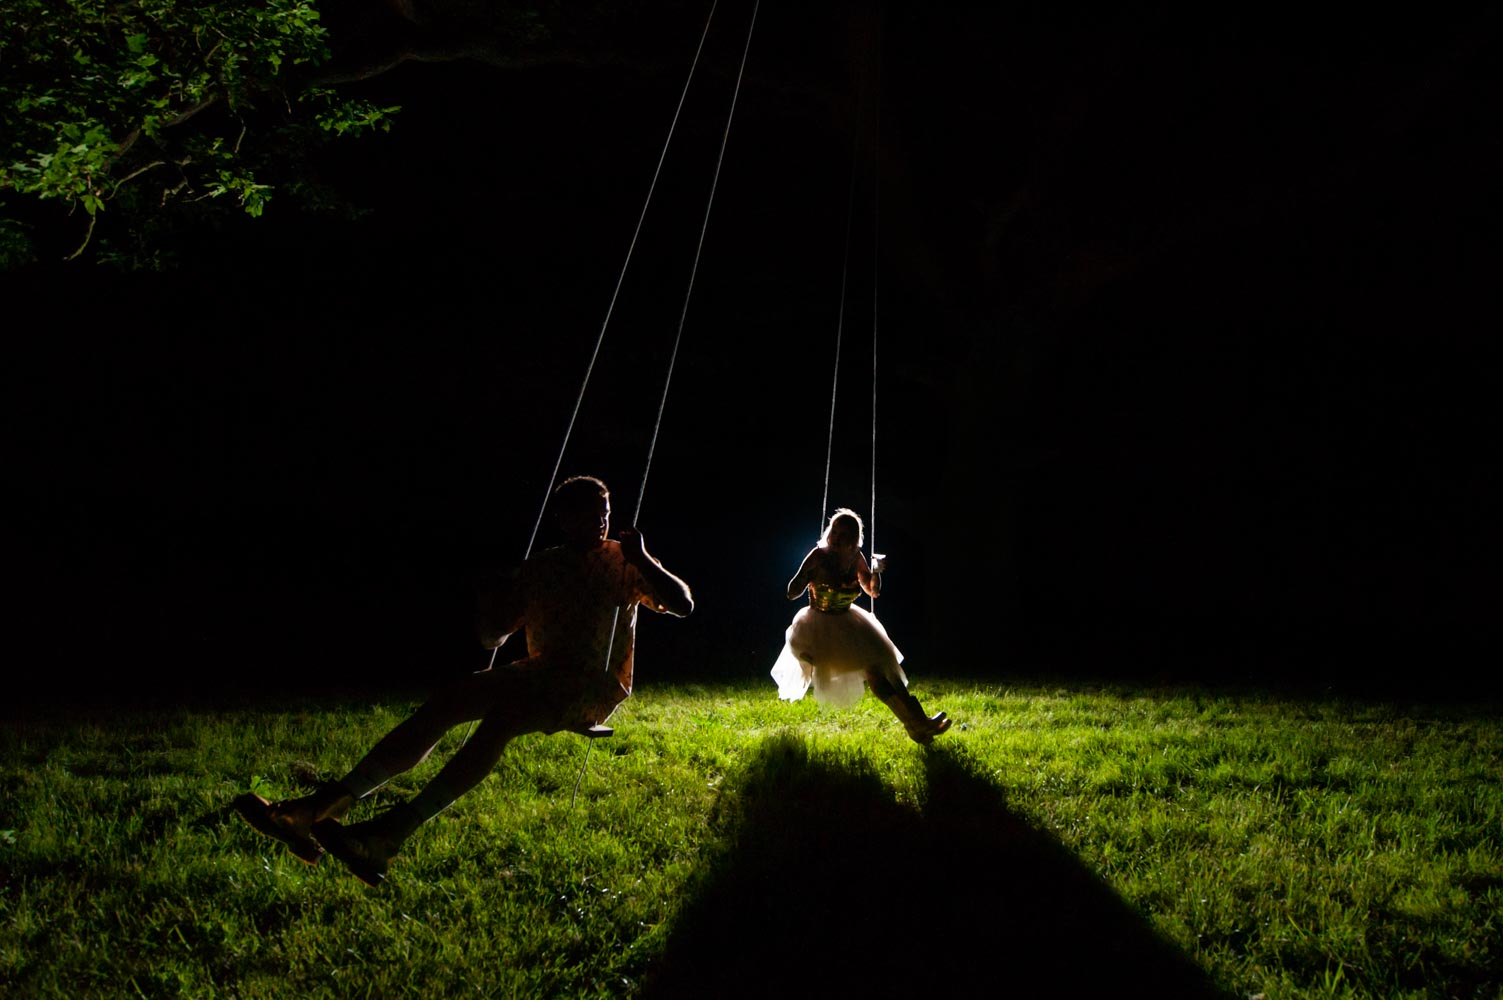 Wedding couple on swings at night